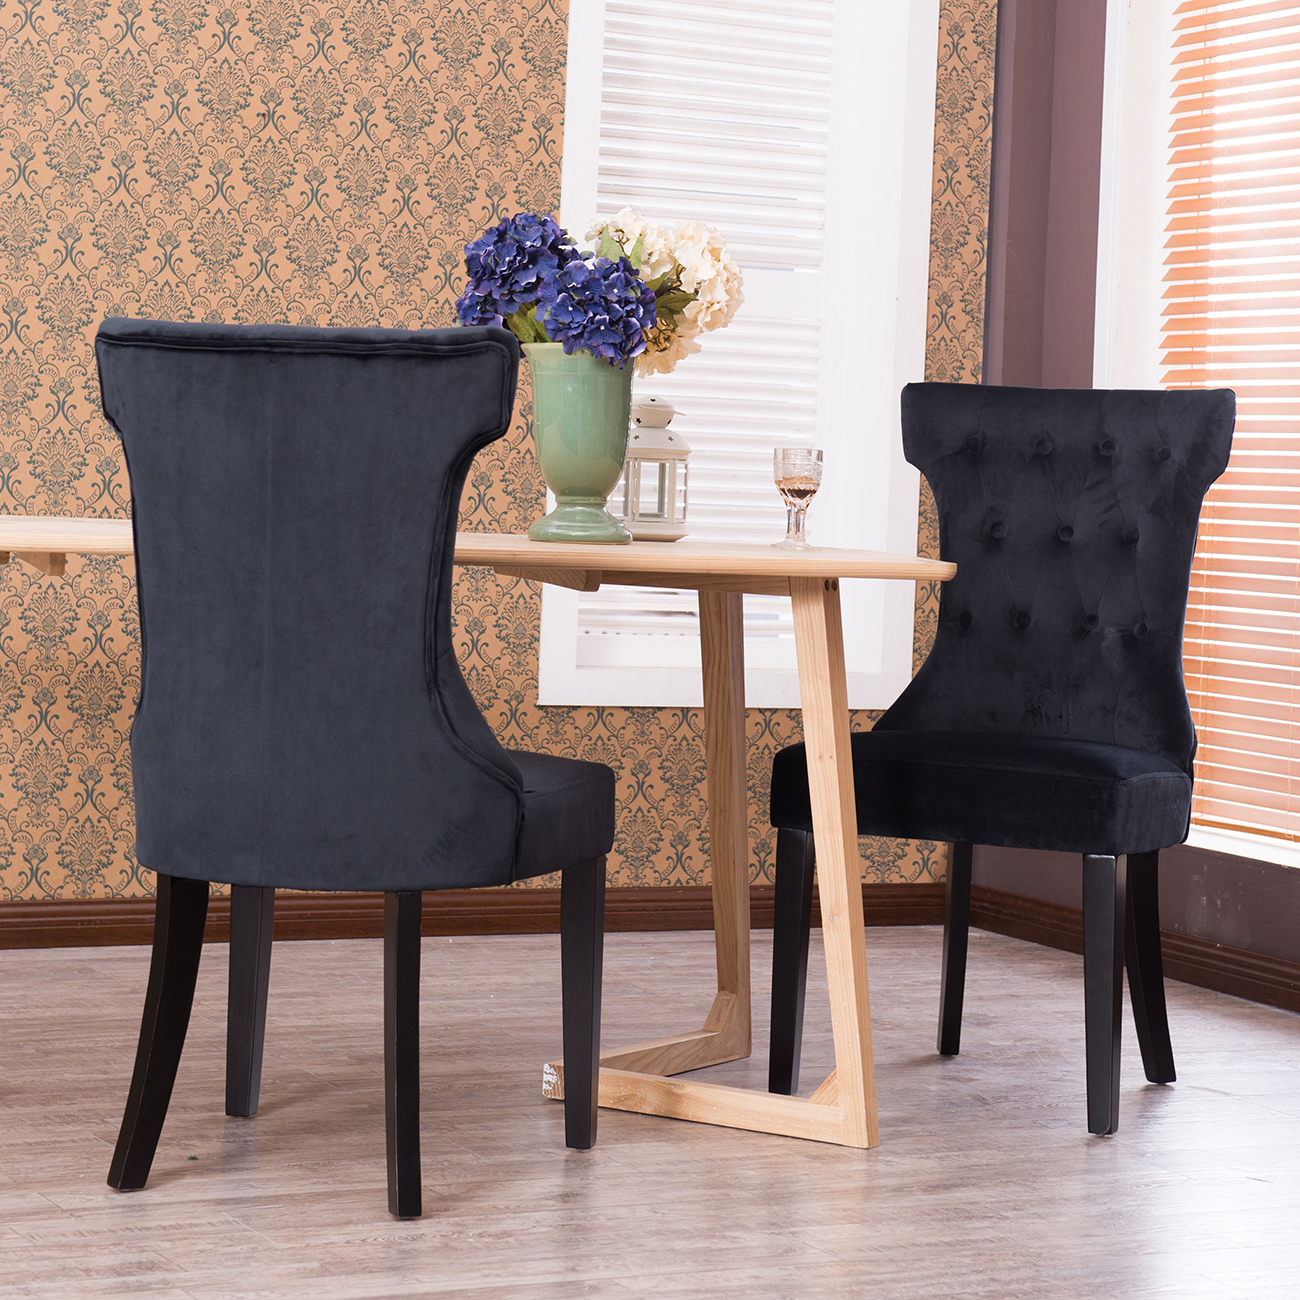 Black fabric dining chairs - Set Of 2 Dining Chair Tufted Fabric Button Elegant Modern Armless Chairs Black